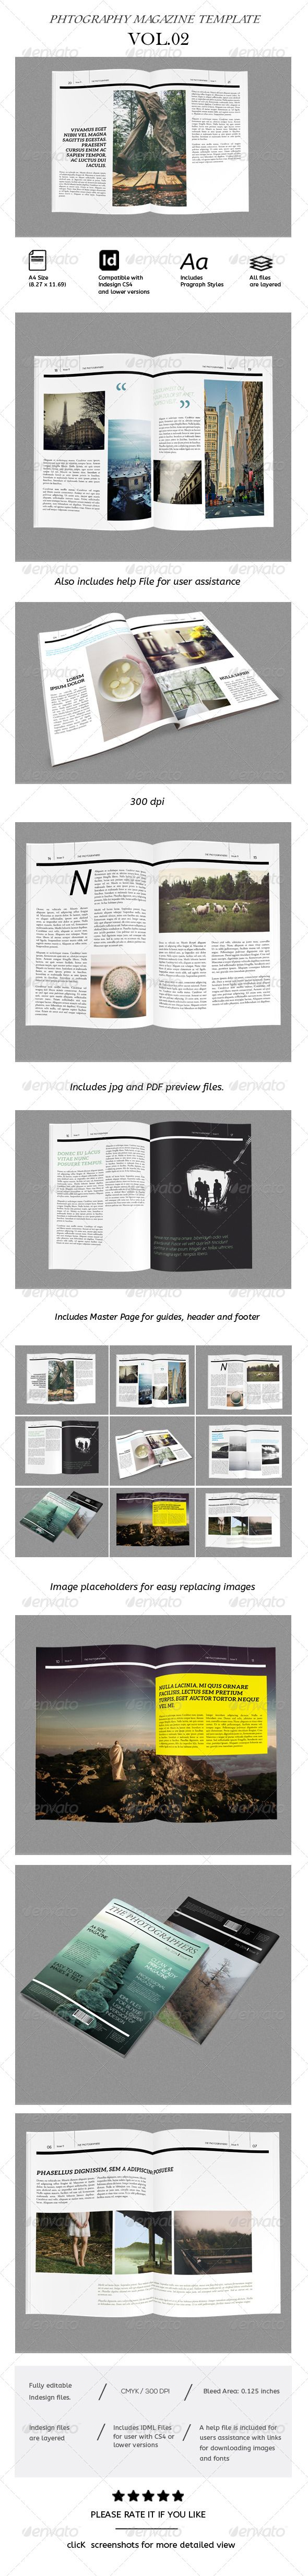 Magazine Indesign Template/ Portfolio/Catalog. Easy to edit, print ready. For $16.